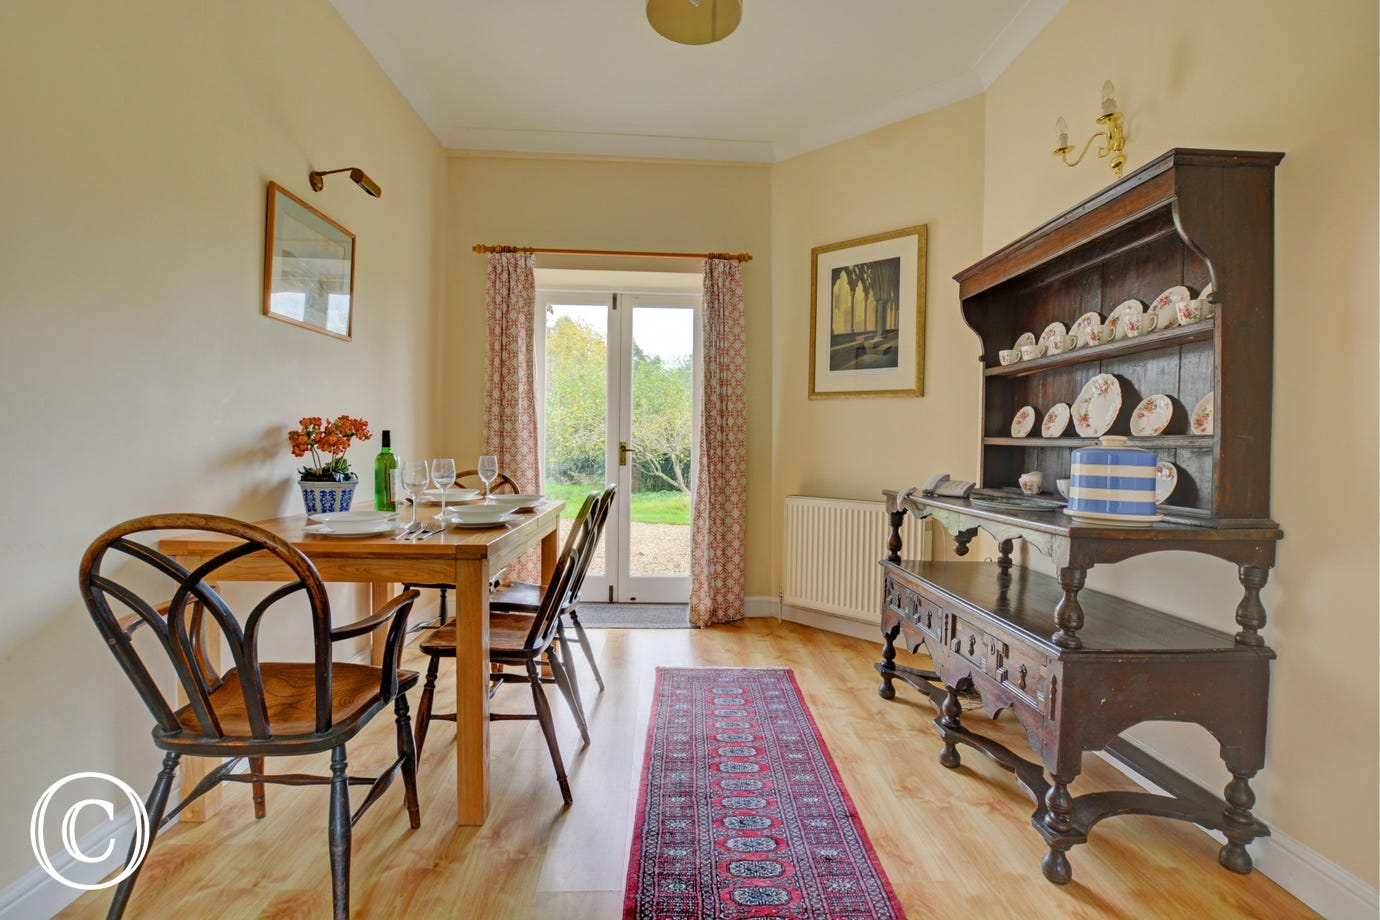 Dining room with doors leading out to the garden,  furnishings of a dark wood dresser and ding table and chairs.